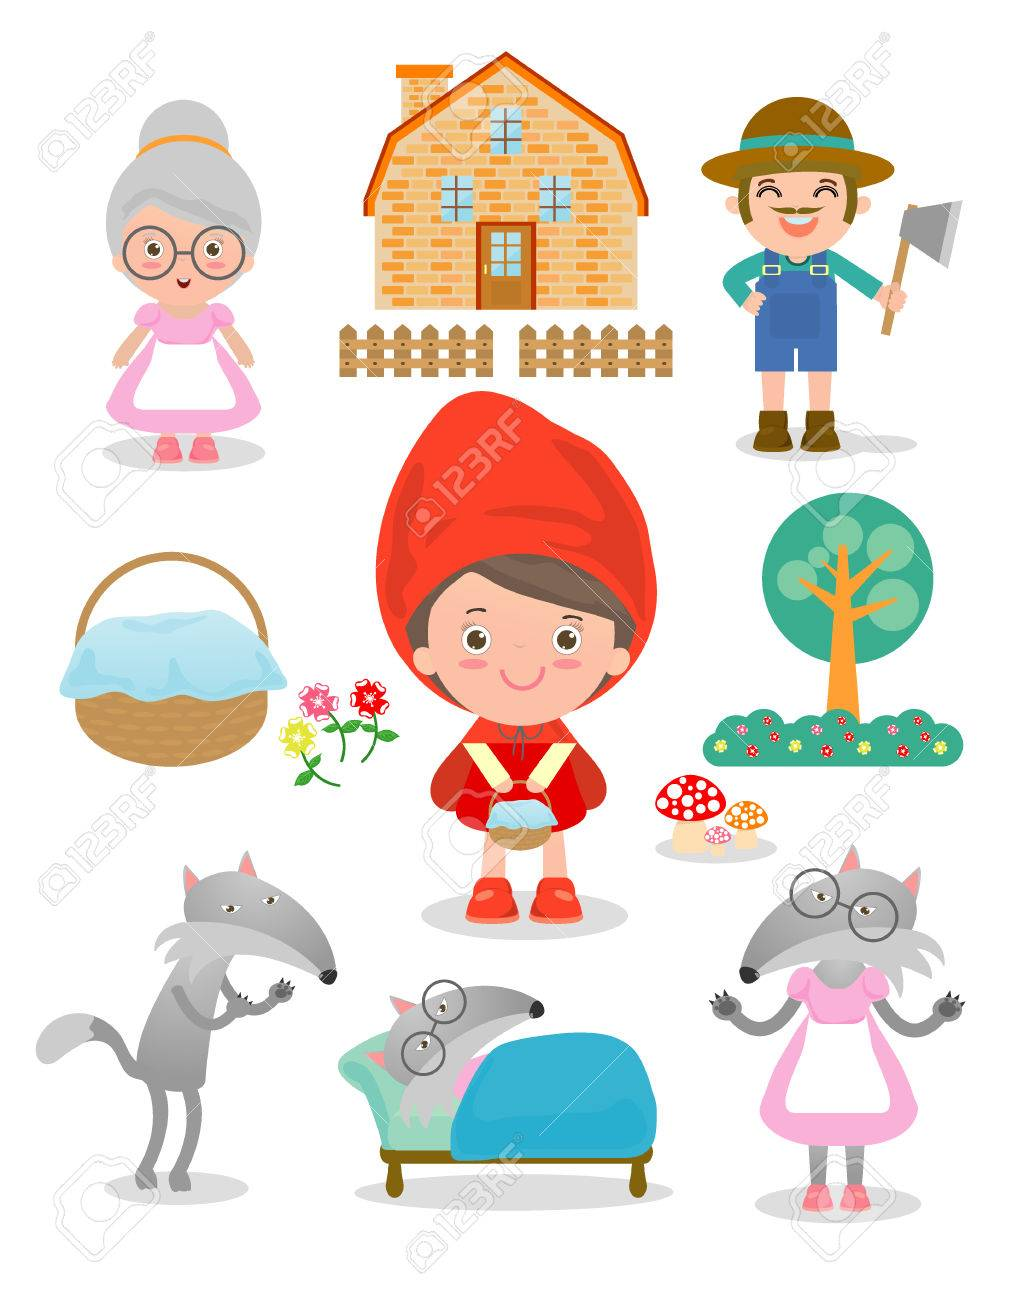 Set of characters from Little Red Riding Hood fairy tale on white...